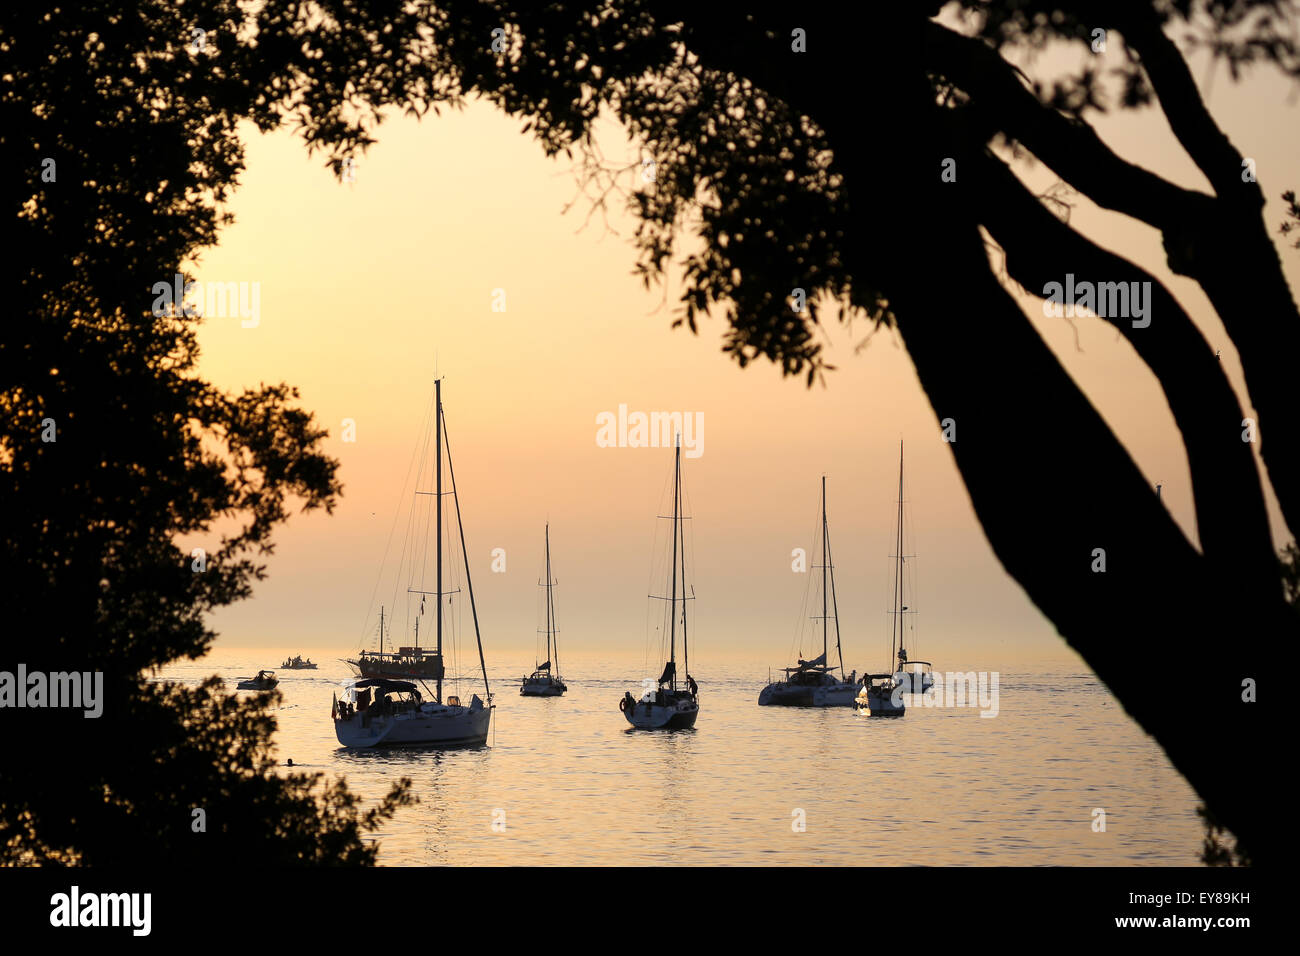 A view of a group of sailboats anchored in the Adriatic sea at sunset in Rovinj, Croatia. - Stock Image